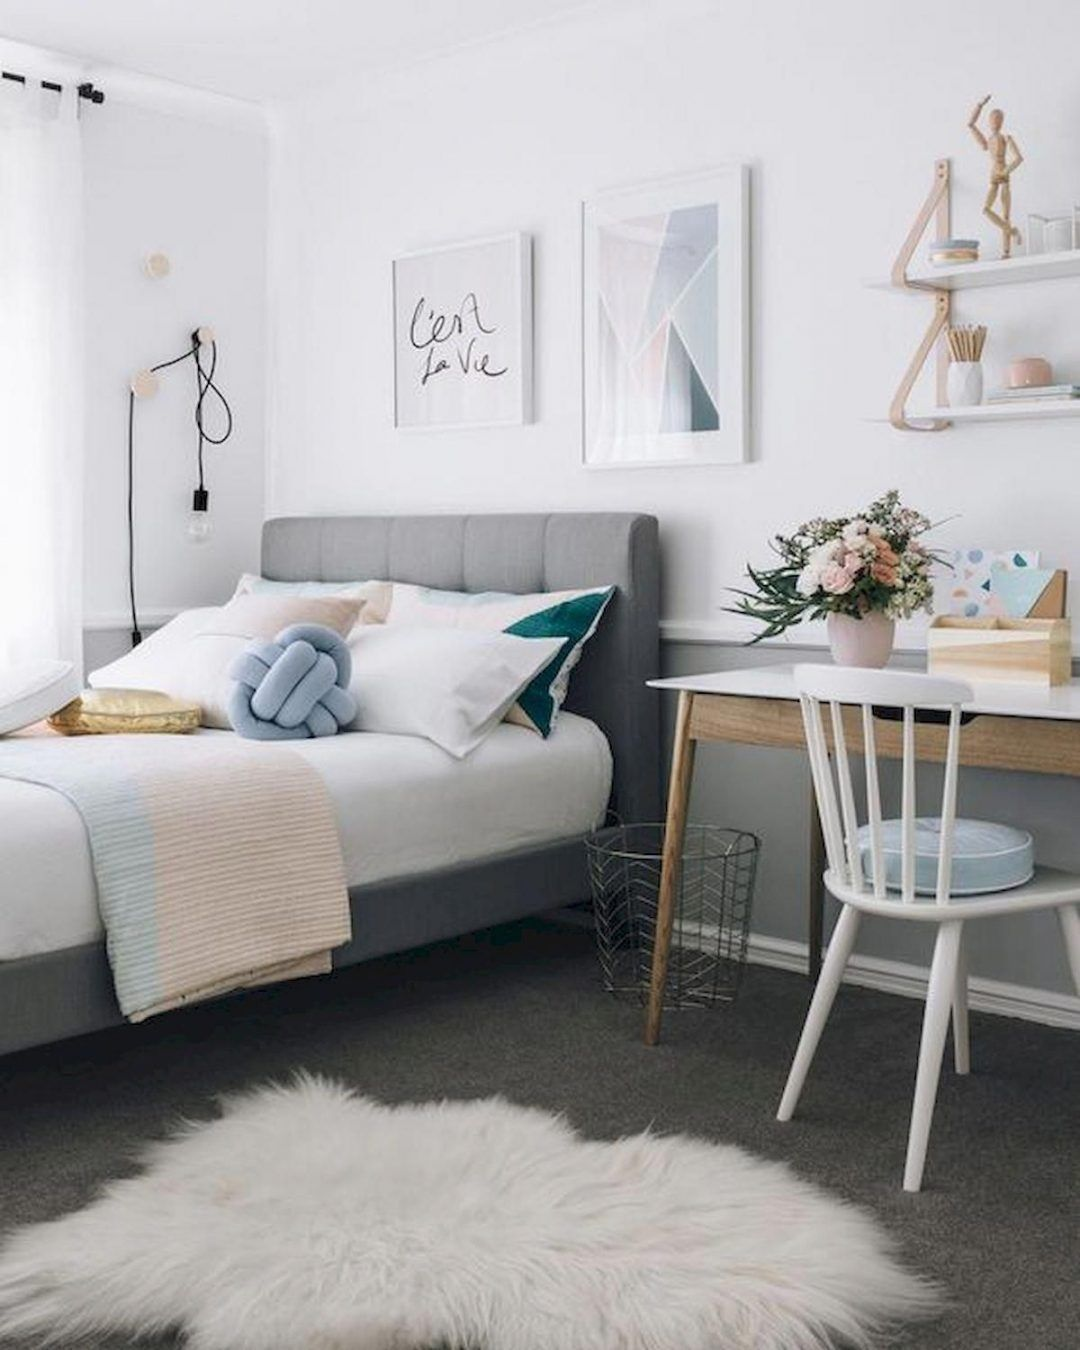 25 Scandinavian Bedroom Ideas To Give Airy And Stylish Look - 22Q